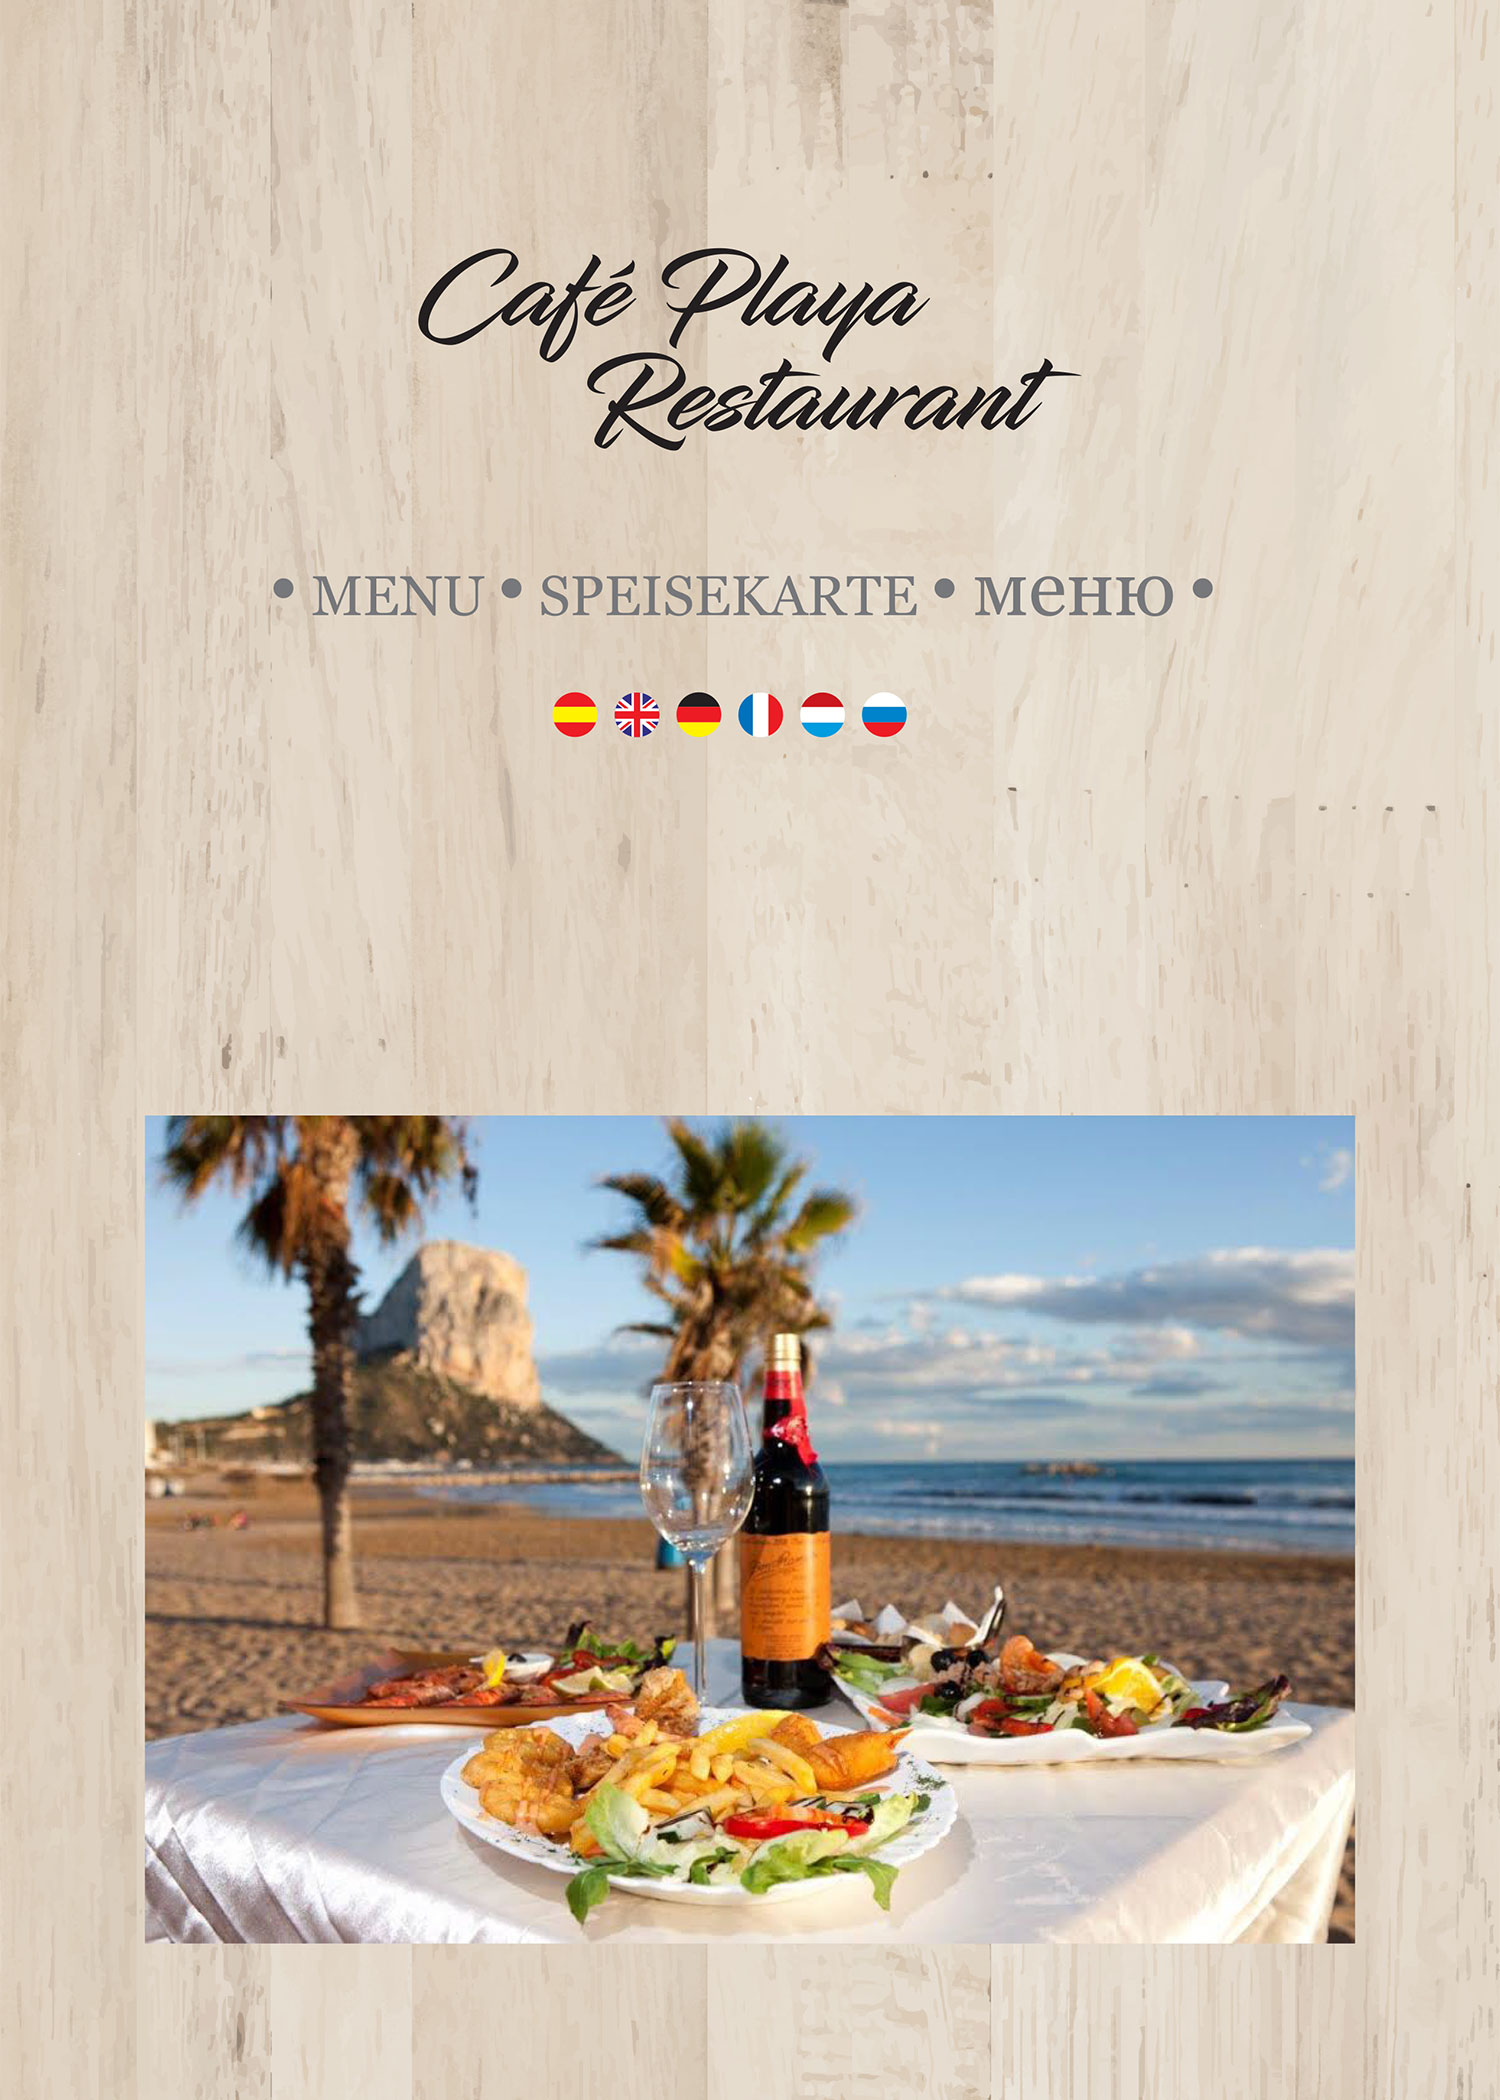 Cafe Playa Menu